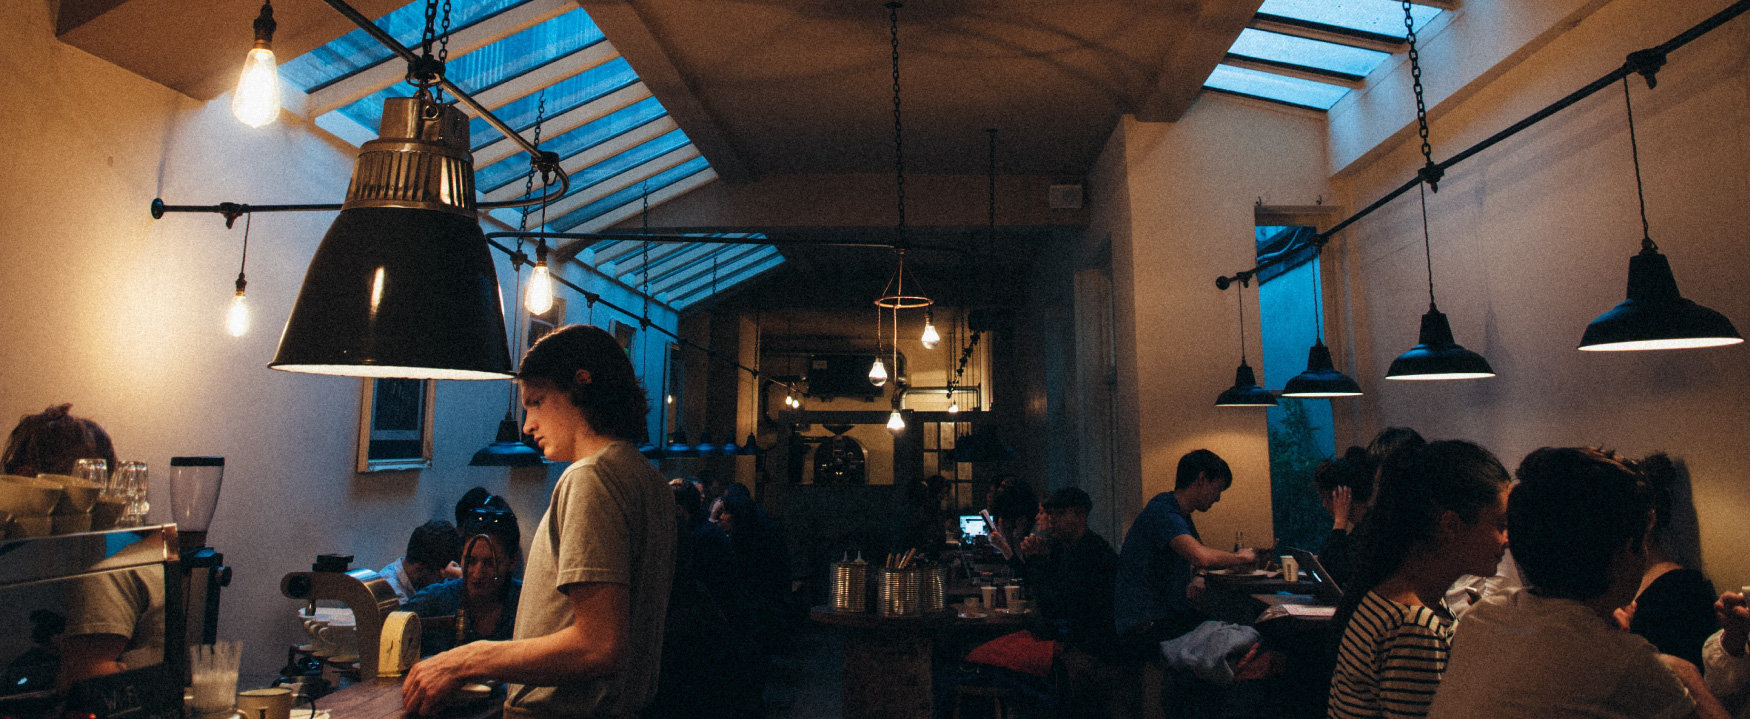 A dimly lit, crowded coffee shop is shown.  Patrons sit at tables, and a worker attends to a customer at the counter.